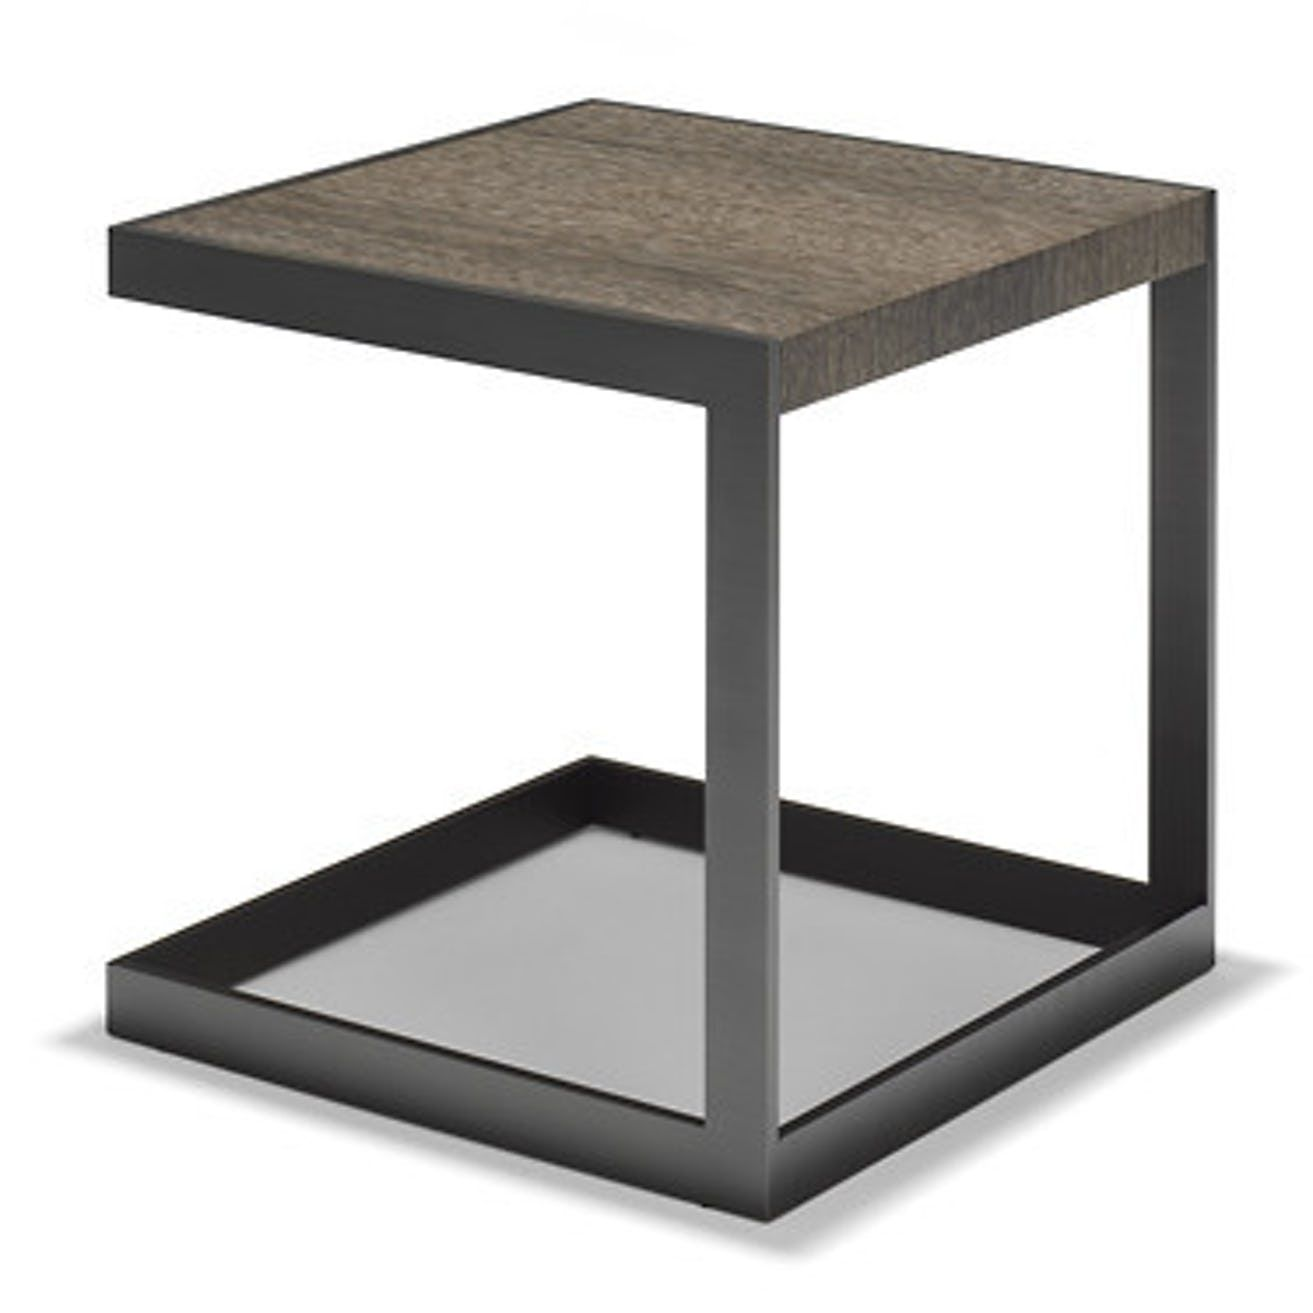 Mantova Side Table By Linteloo Now Available At Haute Living